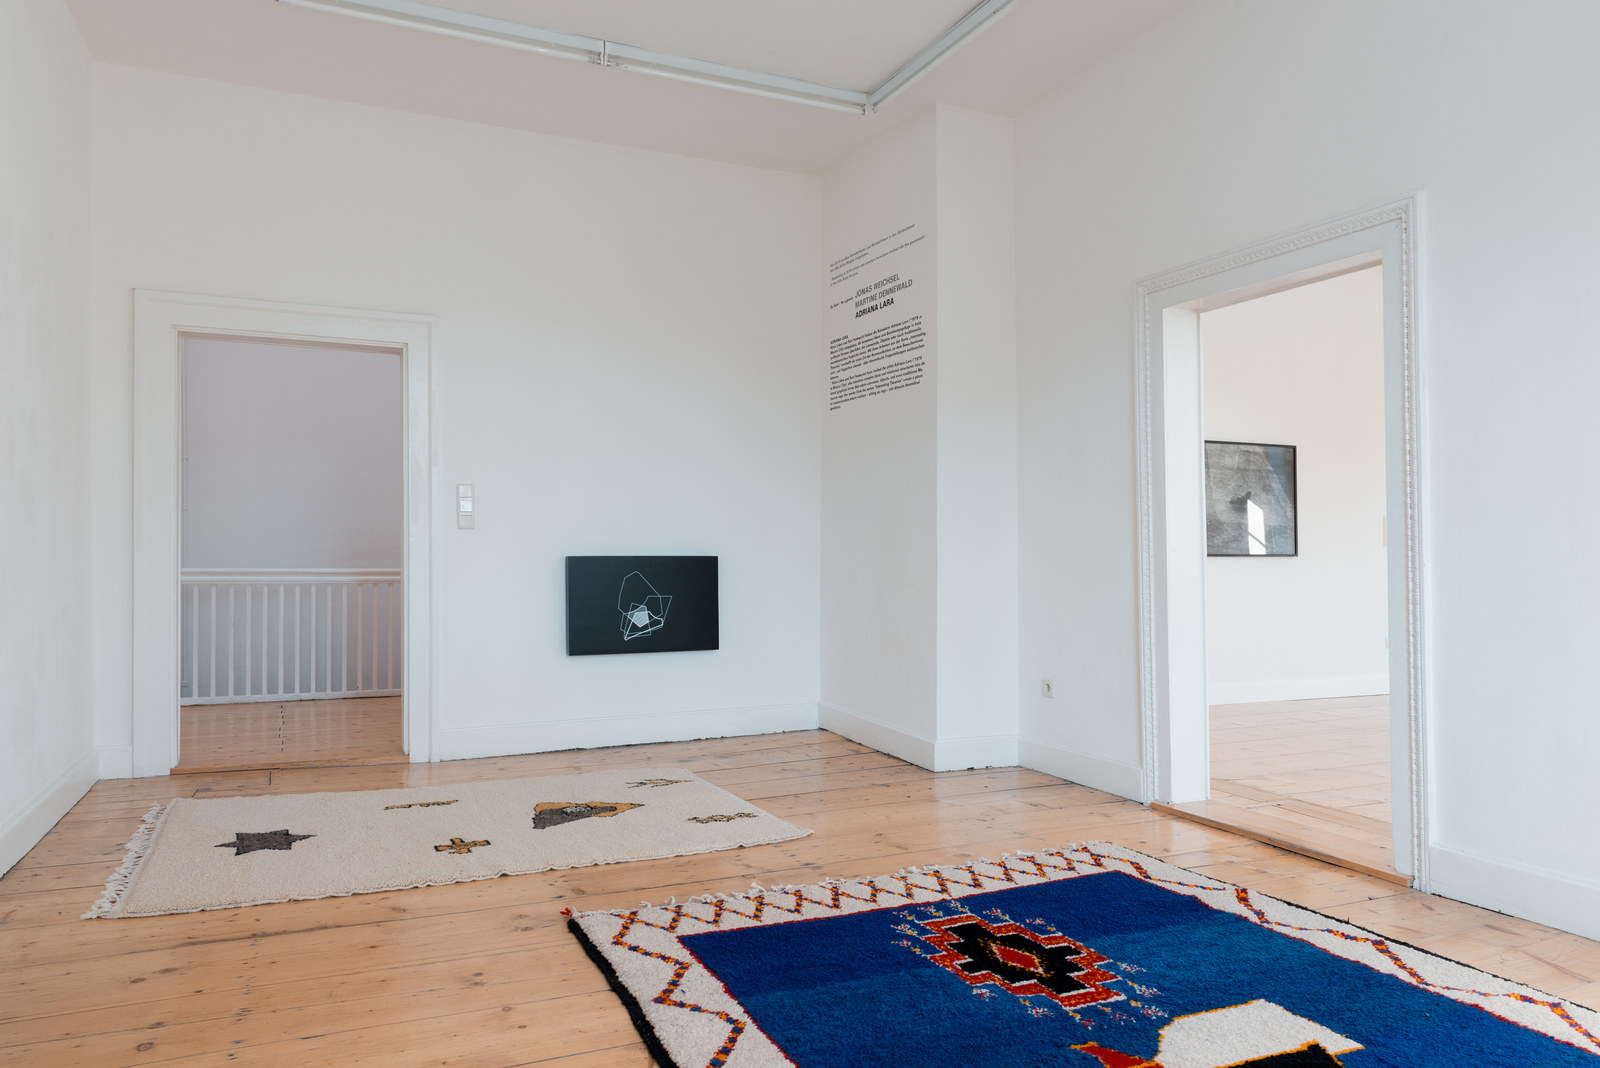 Klara Liden and Karl Holmqvist at Kunstverein Braunschweig (guest room Adriana Lara)_05